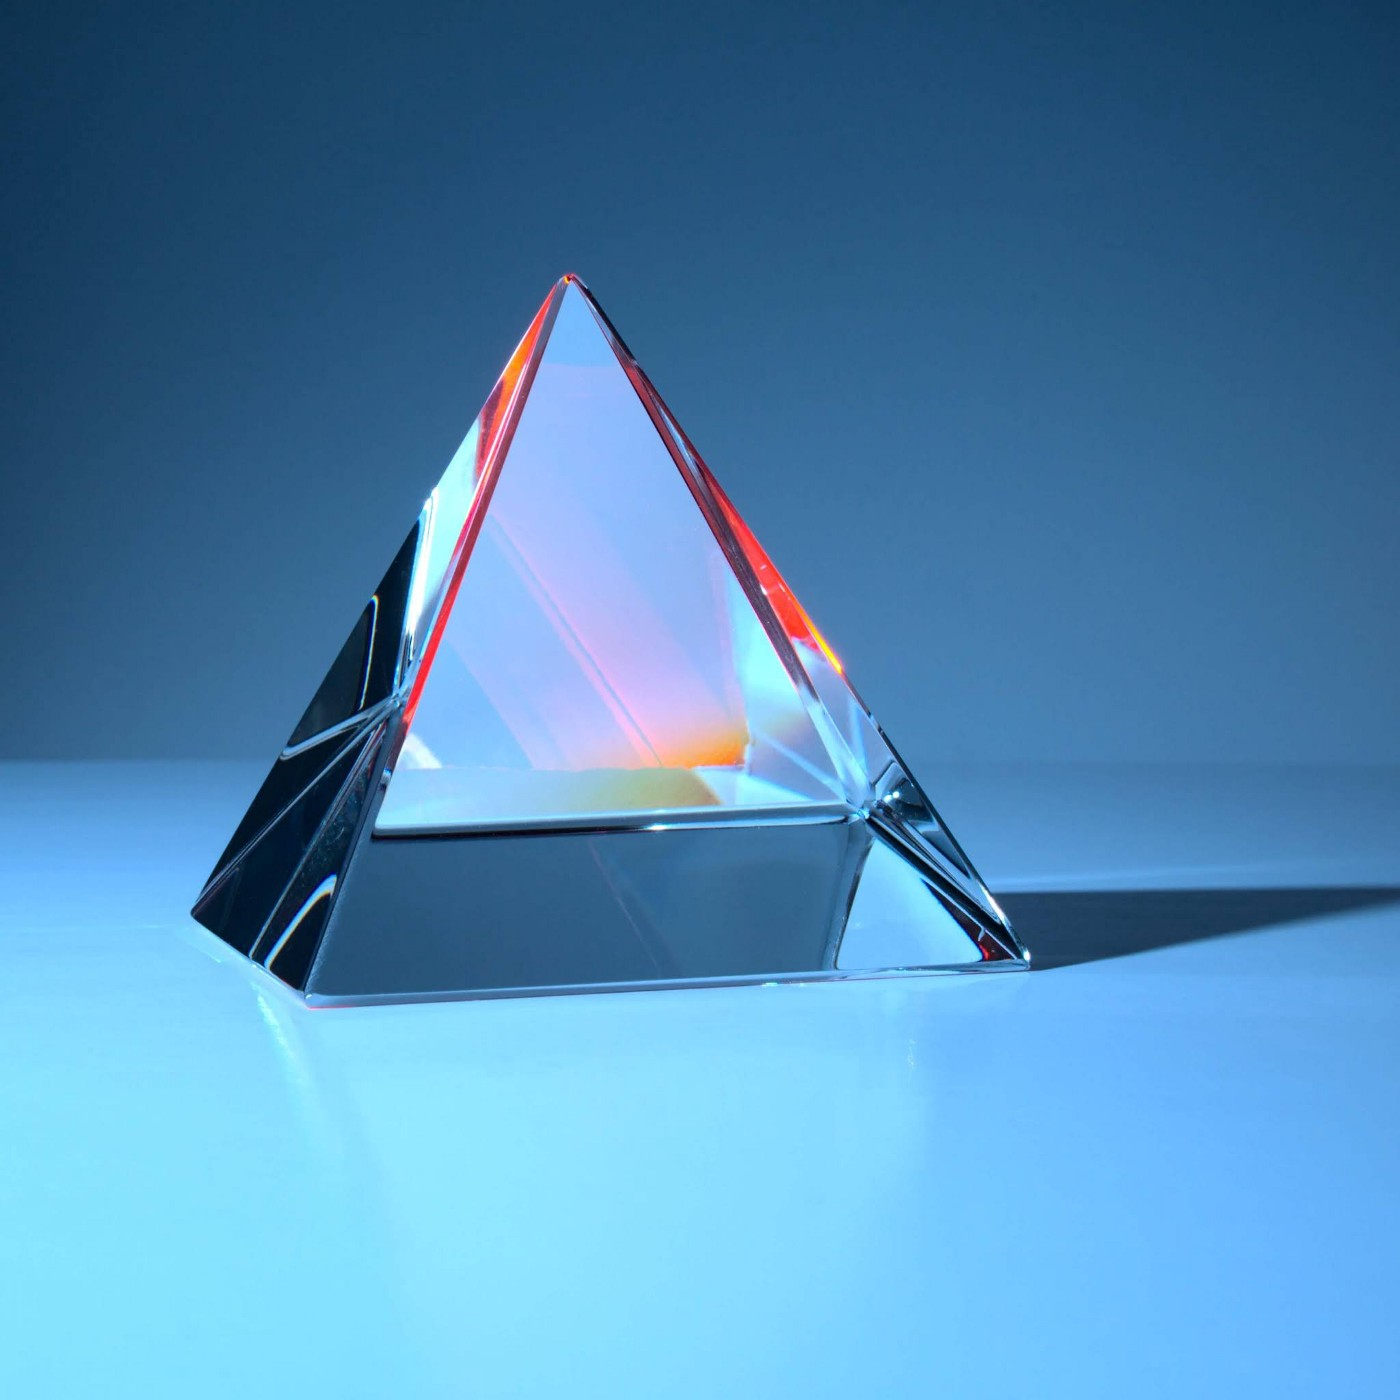 Crystall pyramid with reflections on a blue background